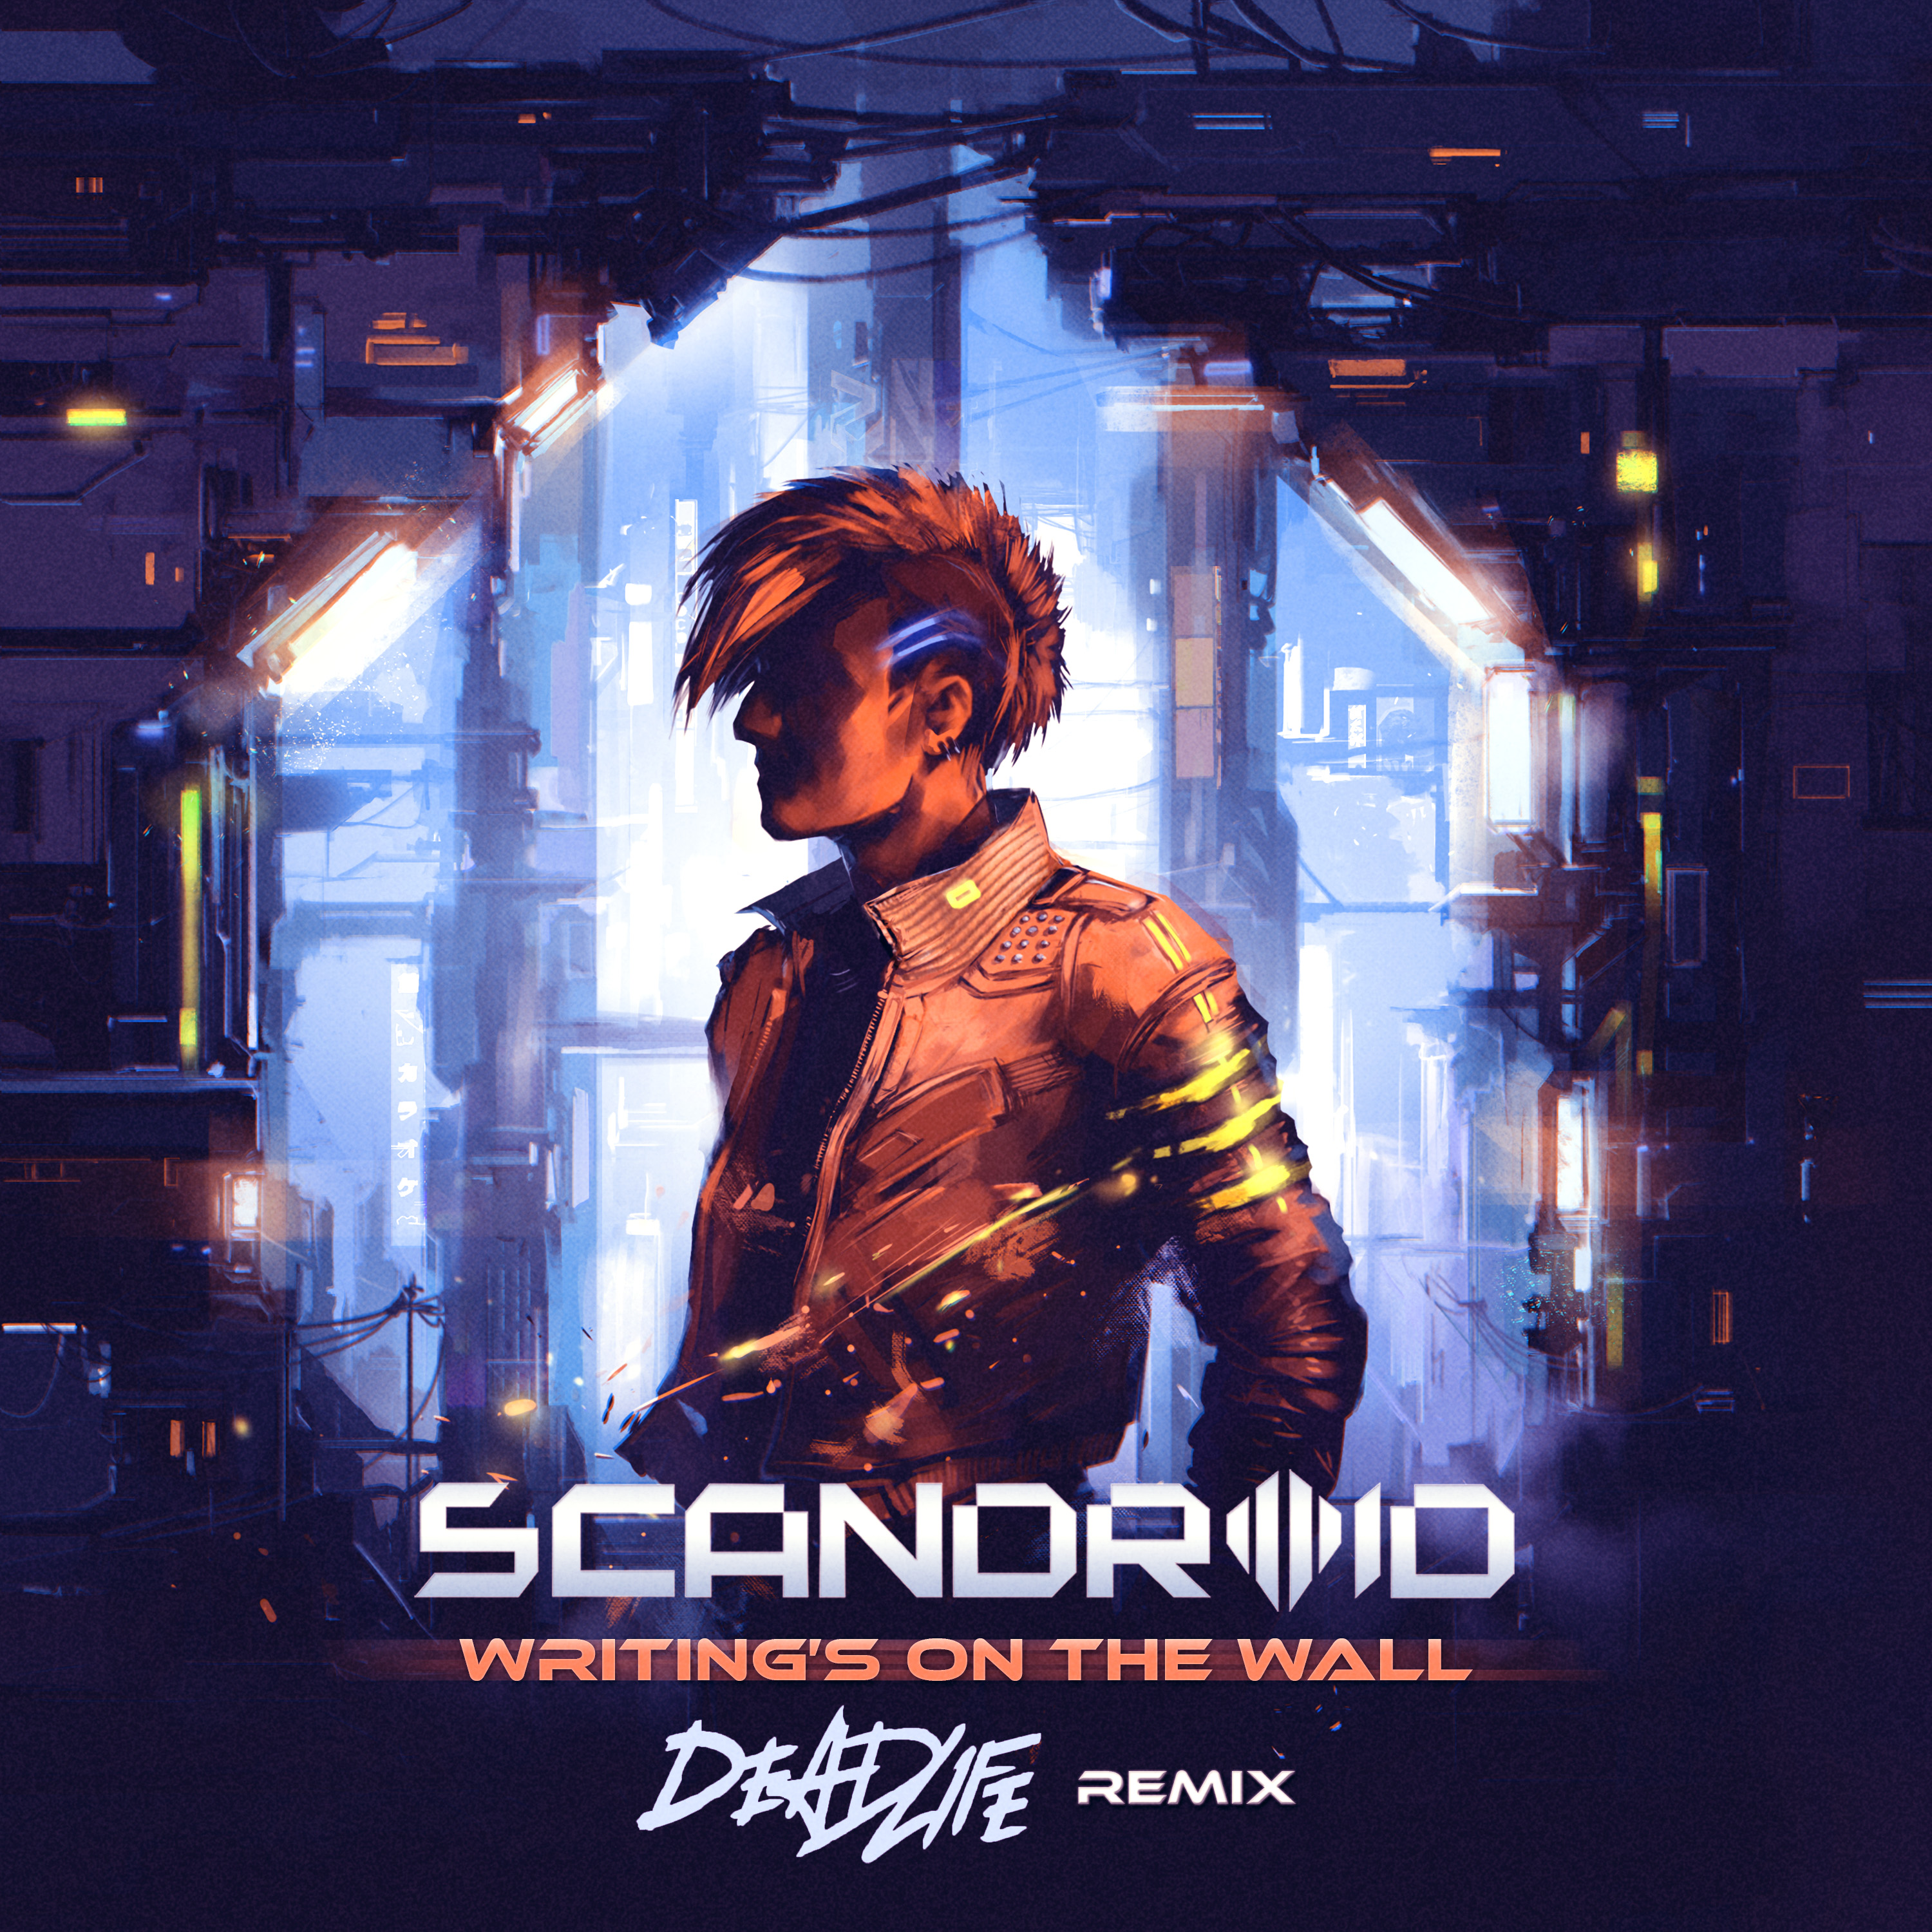 Scandroid - Writing's on the Wall (DEADLIFE REMIX) [Single] Image